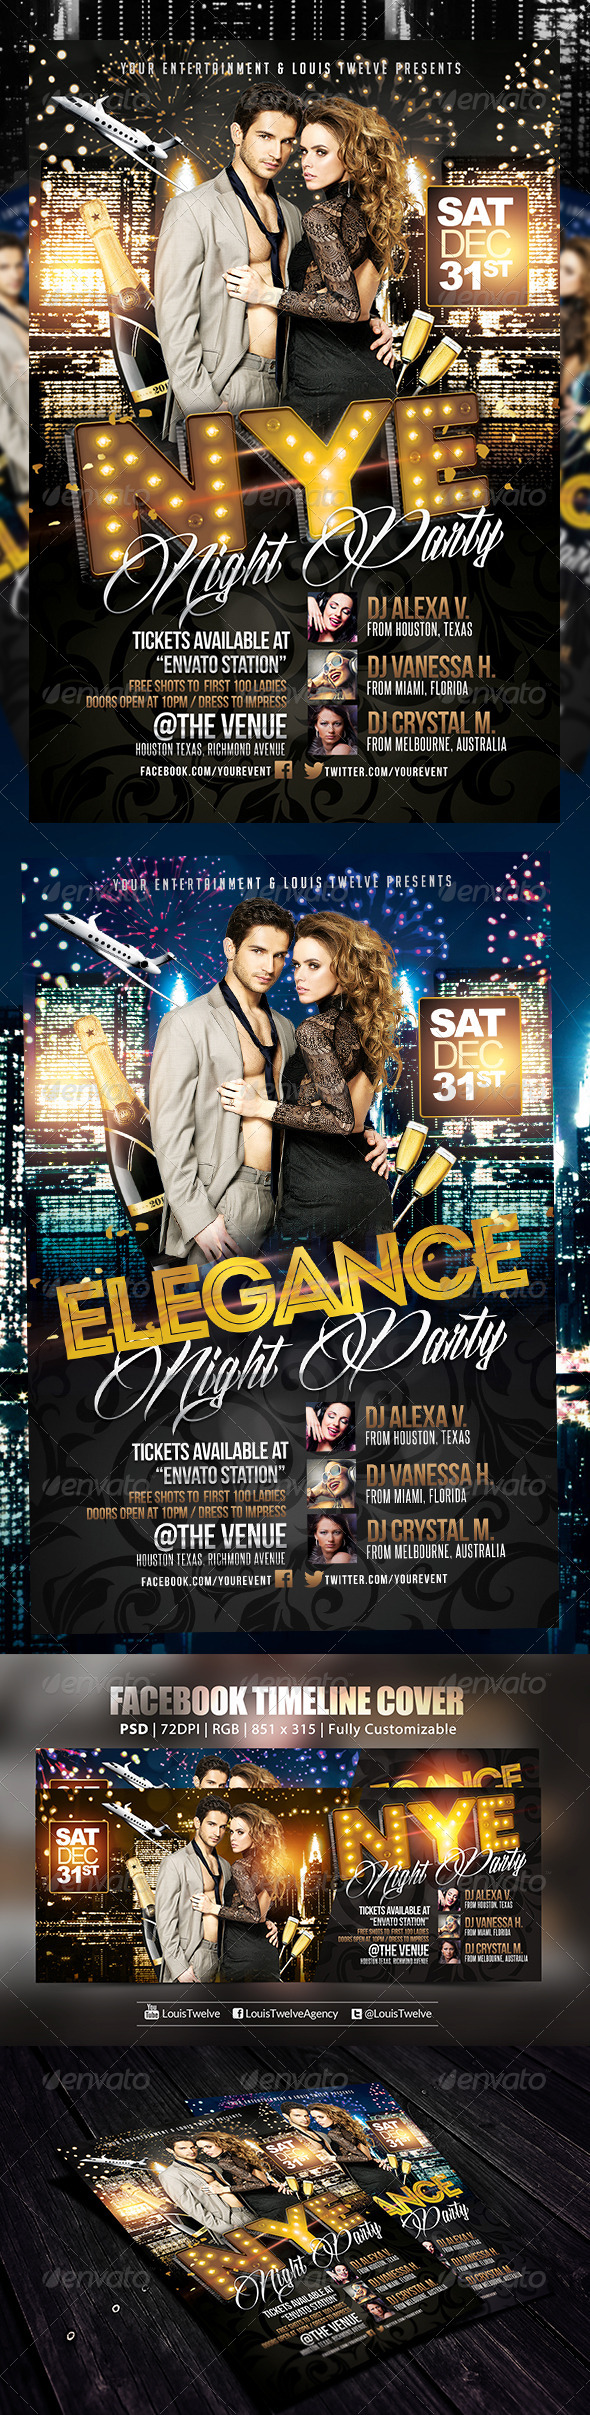 GraphicRiver New Year Eve or Elegance Party Flyer & FB Cover 6078687